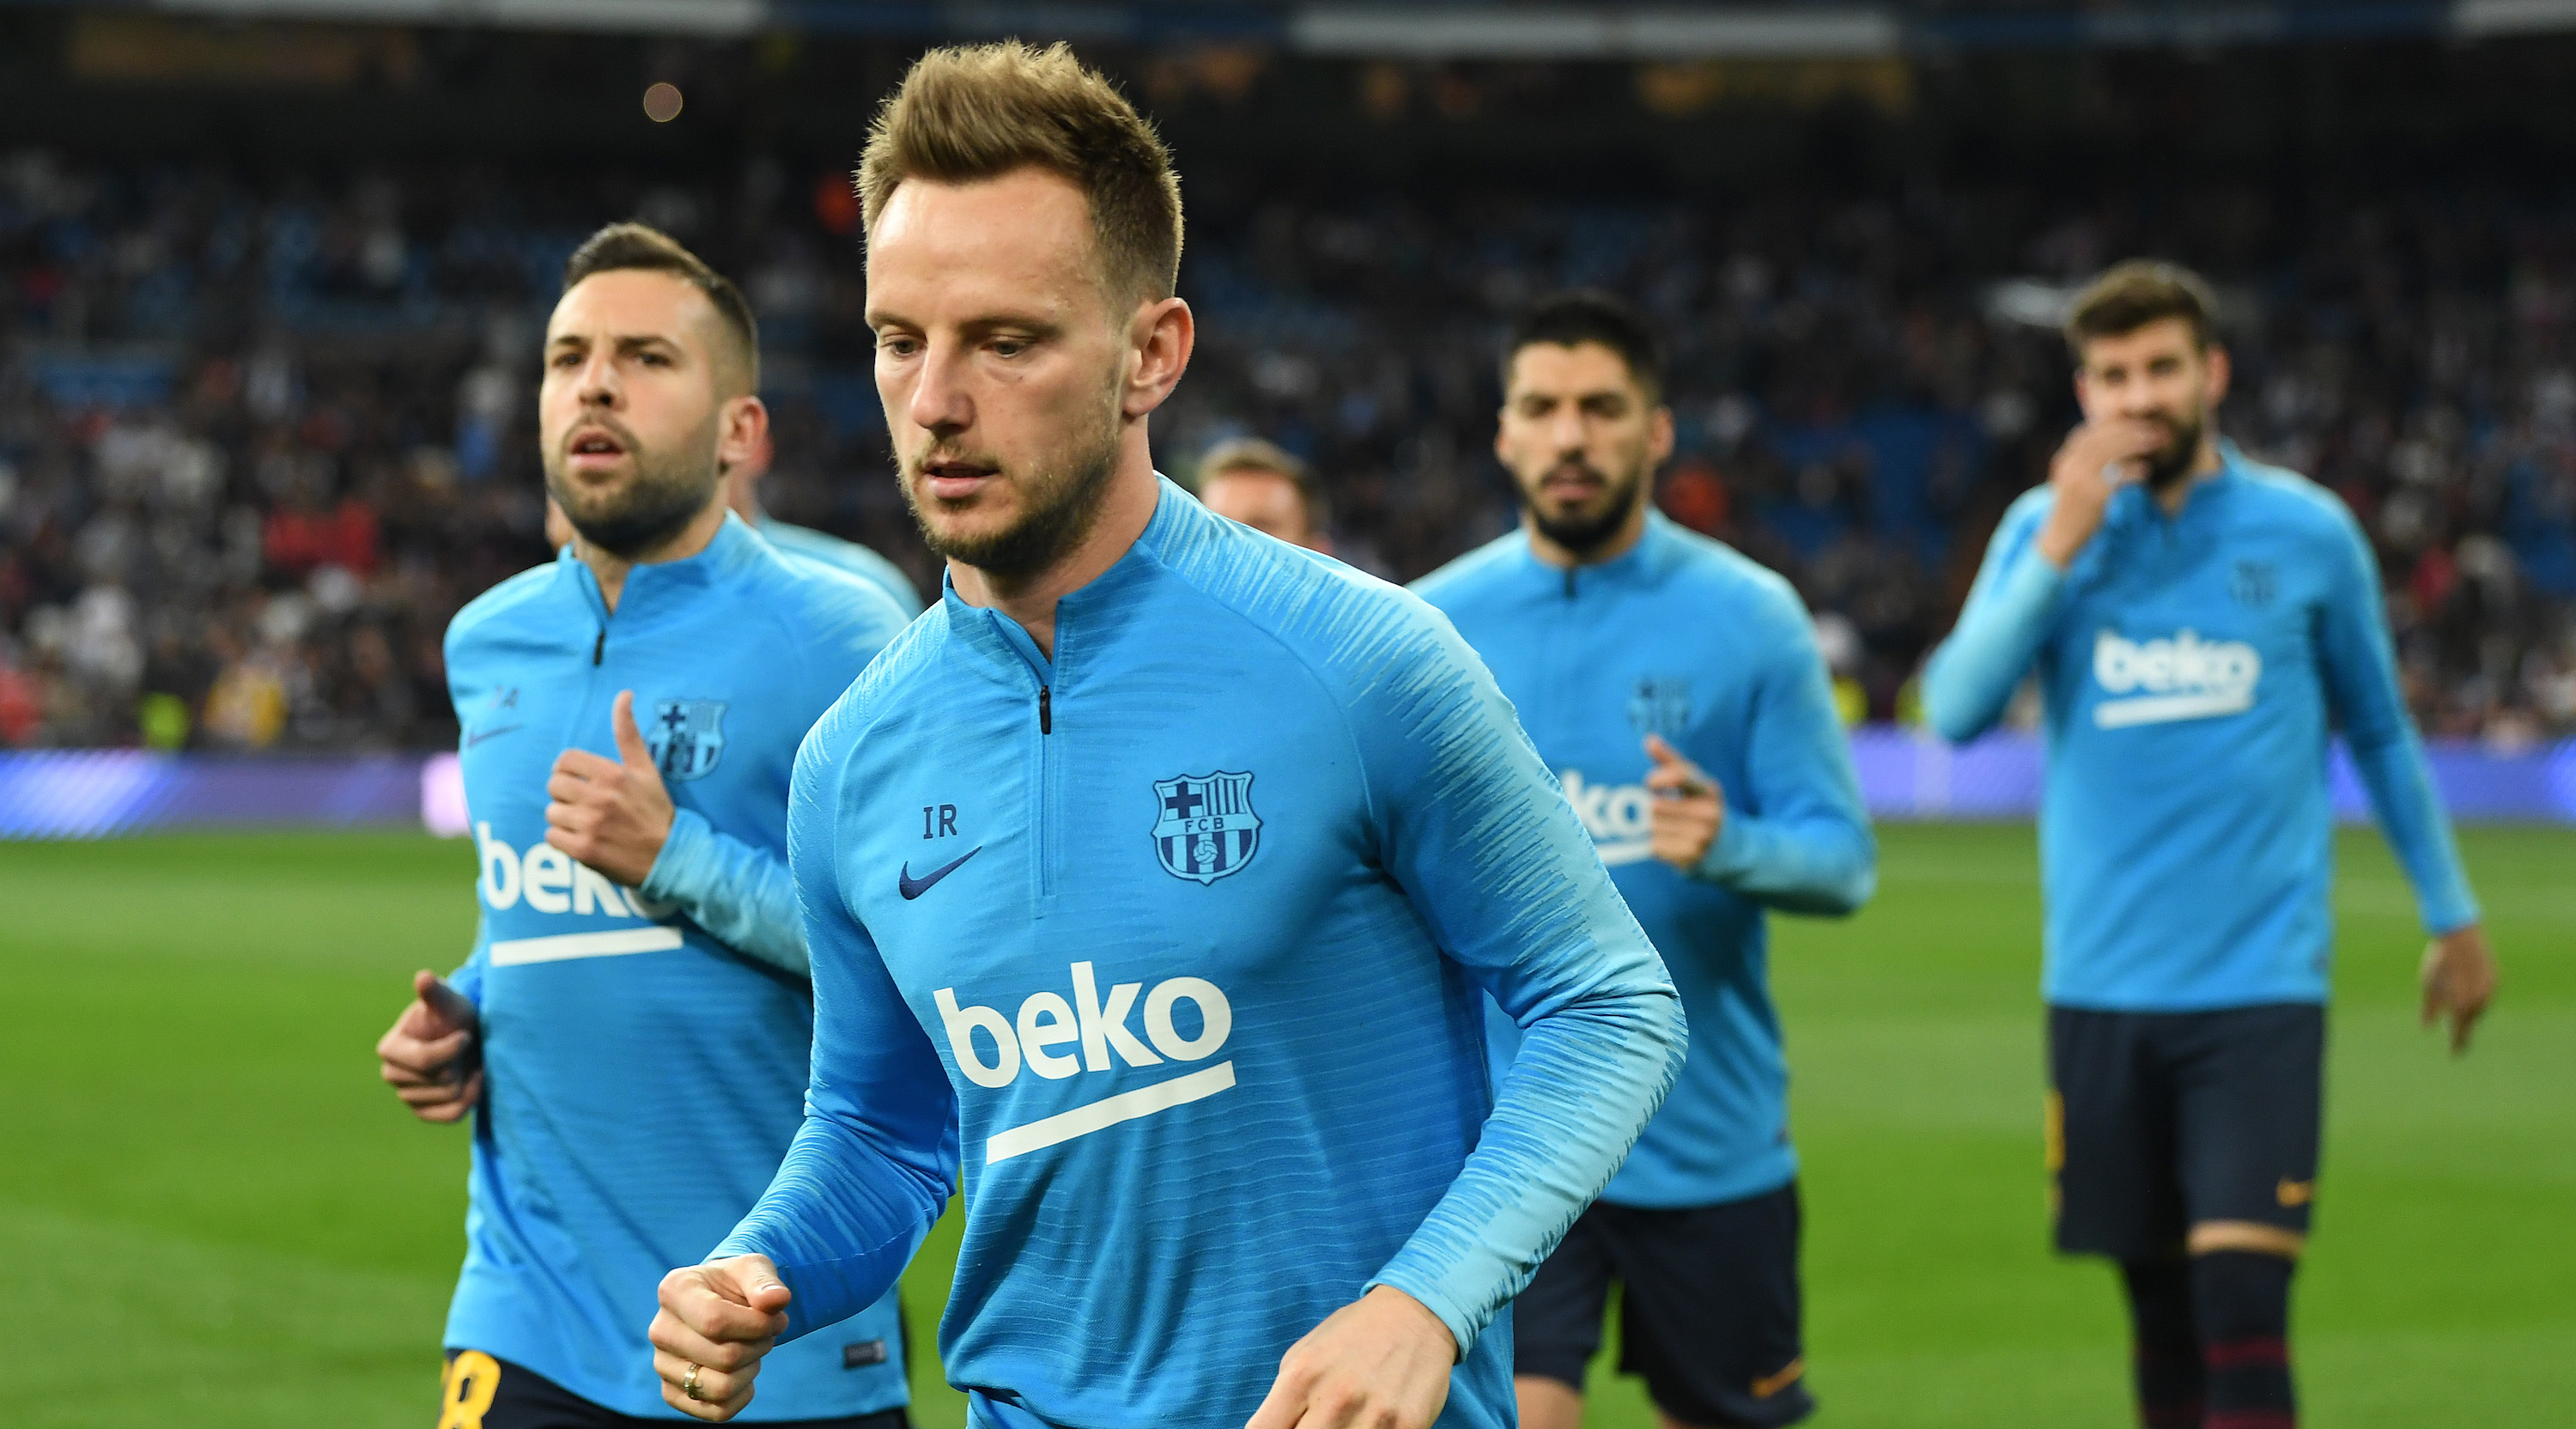 Ivan Rakitic of Barcelona and team mates leave the pitch after the warm ups during the La Liga match between Real Madrid CF and FC Barcelona at Estadio Santiago Bernabeu on March 02, 2019 in Madrid, Spain. (Photo by David Ramos/Getty Images)